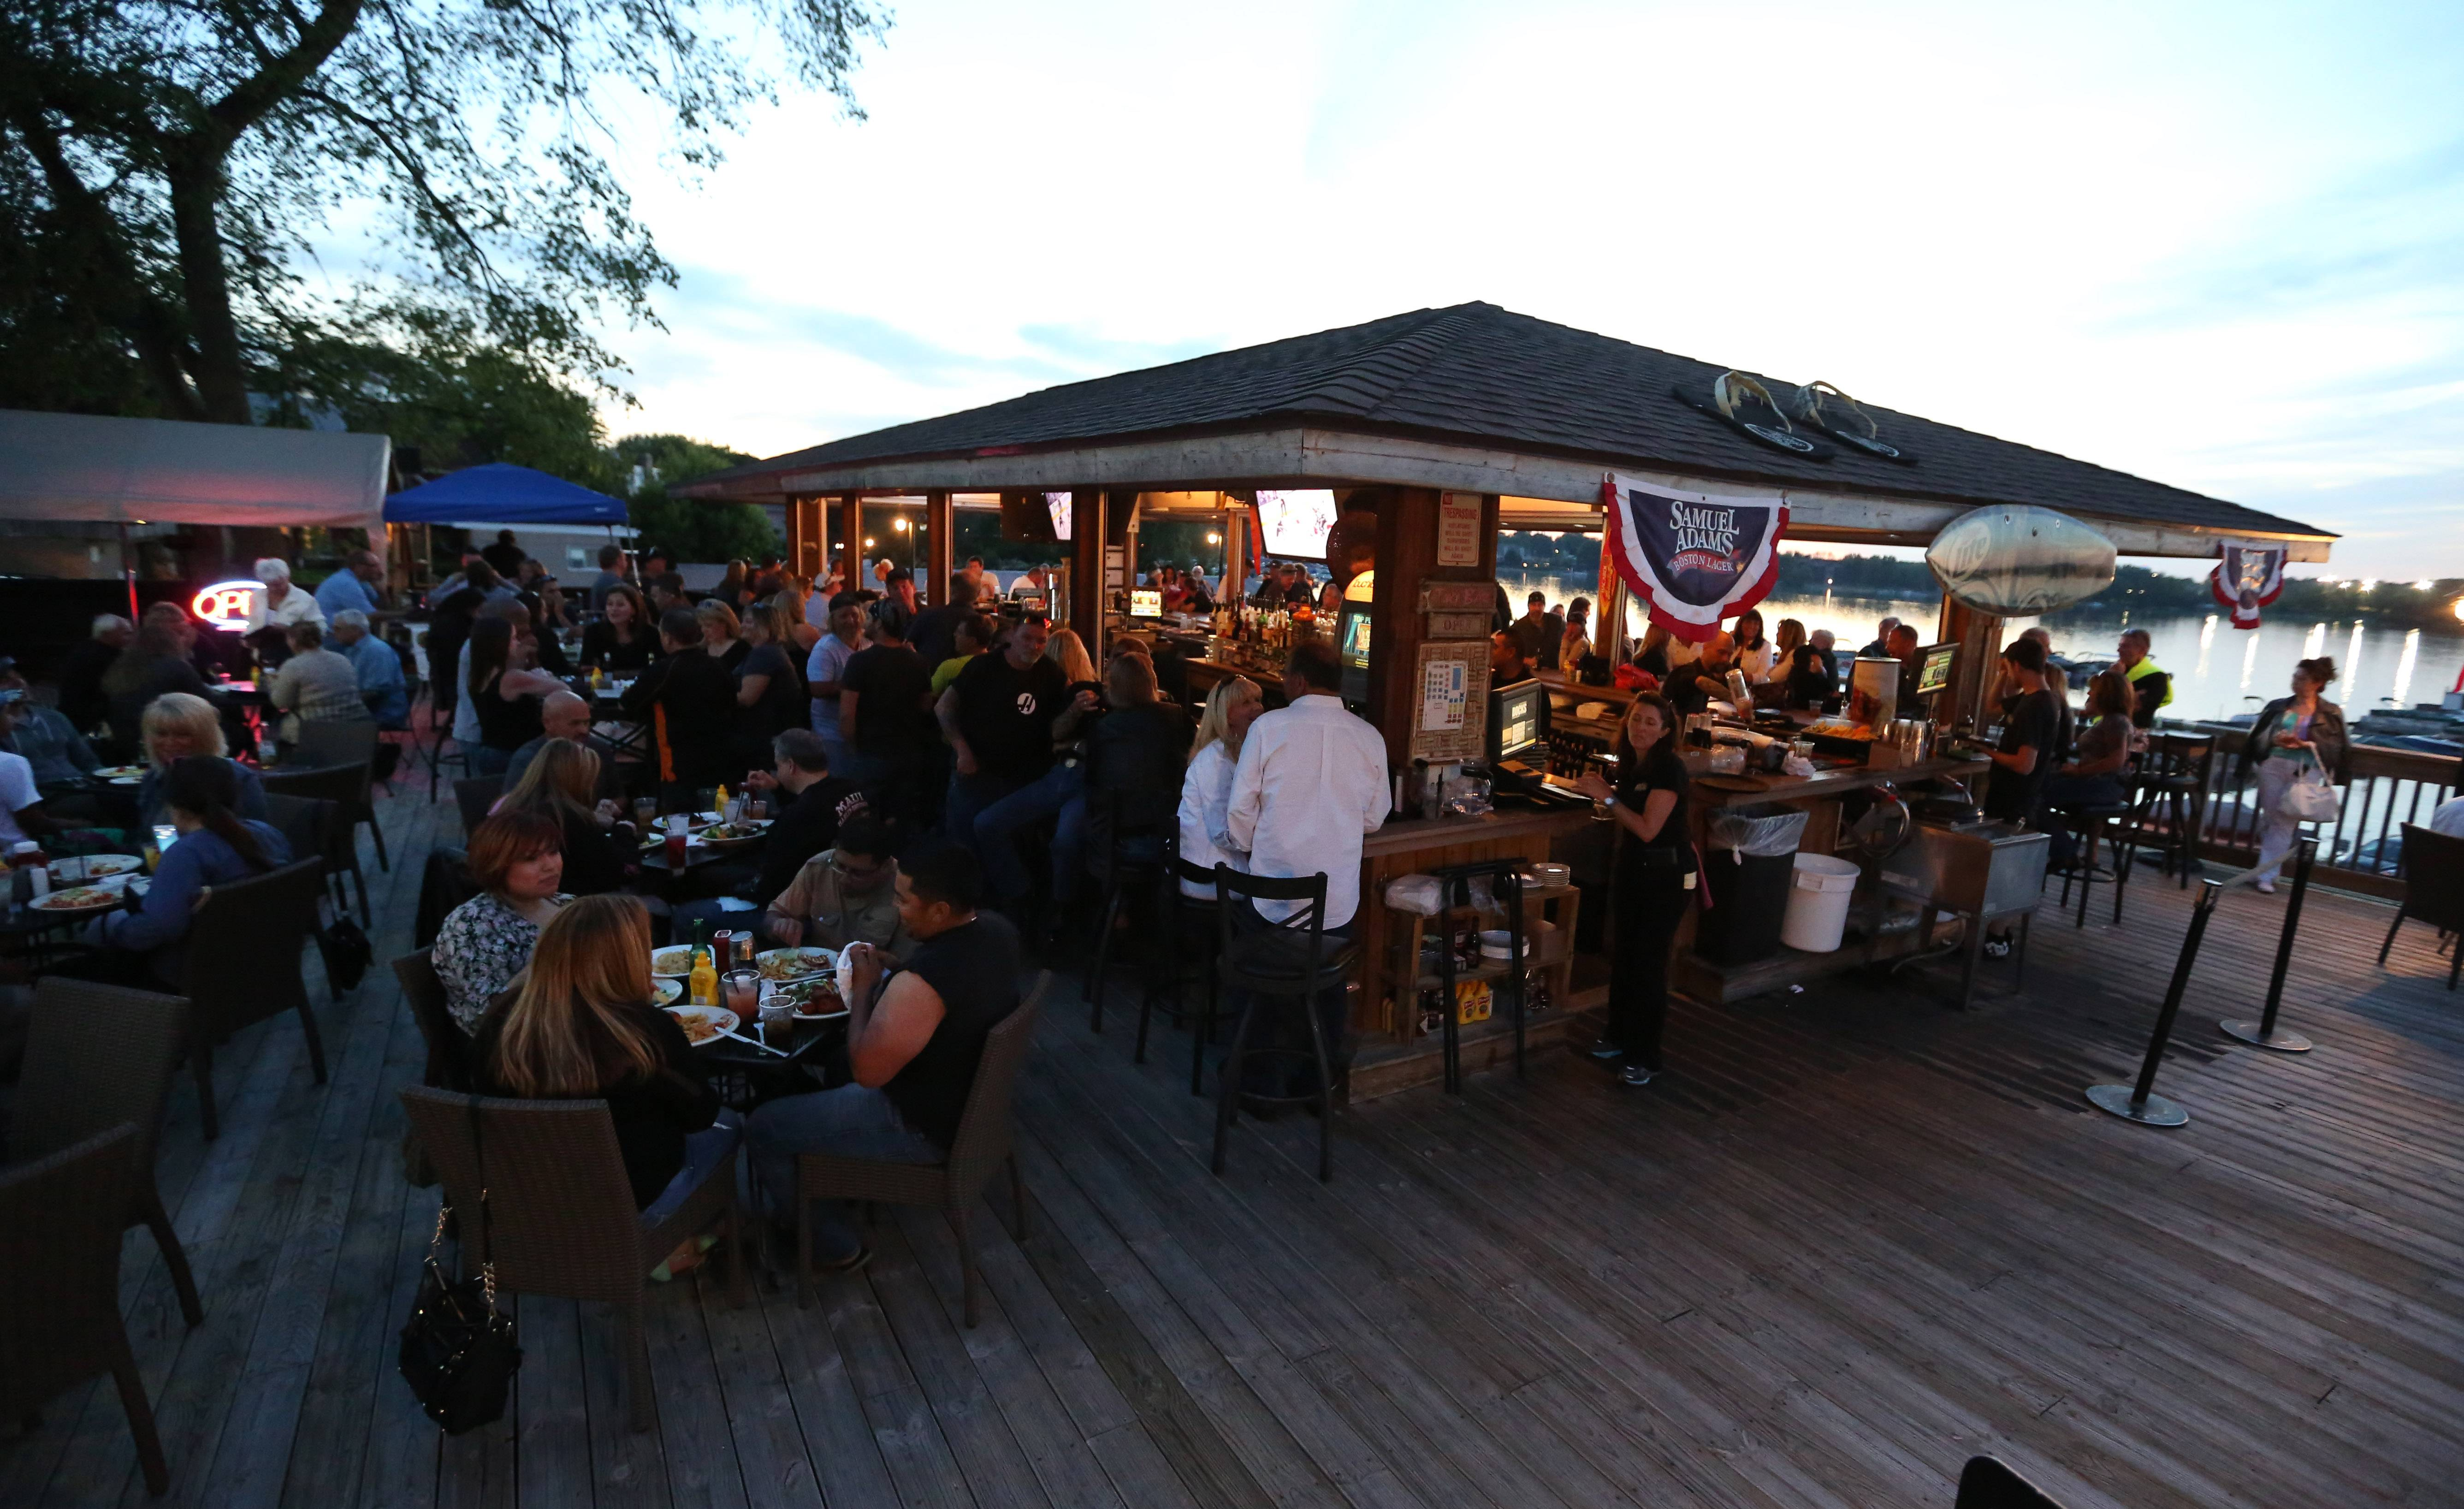 Docks Bar and Grill in Wauconda offers a tiki-themed bar and deck overlooking Bangs Lake.